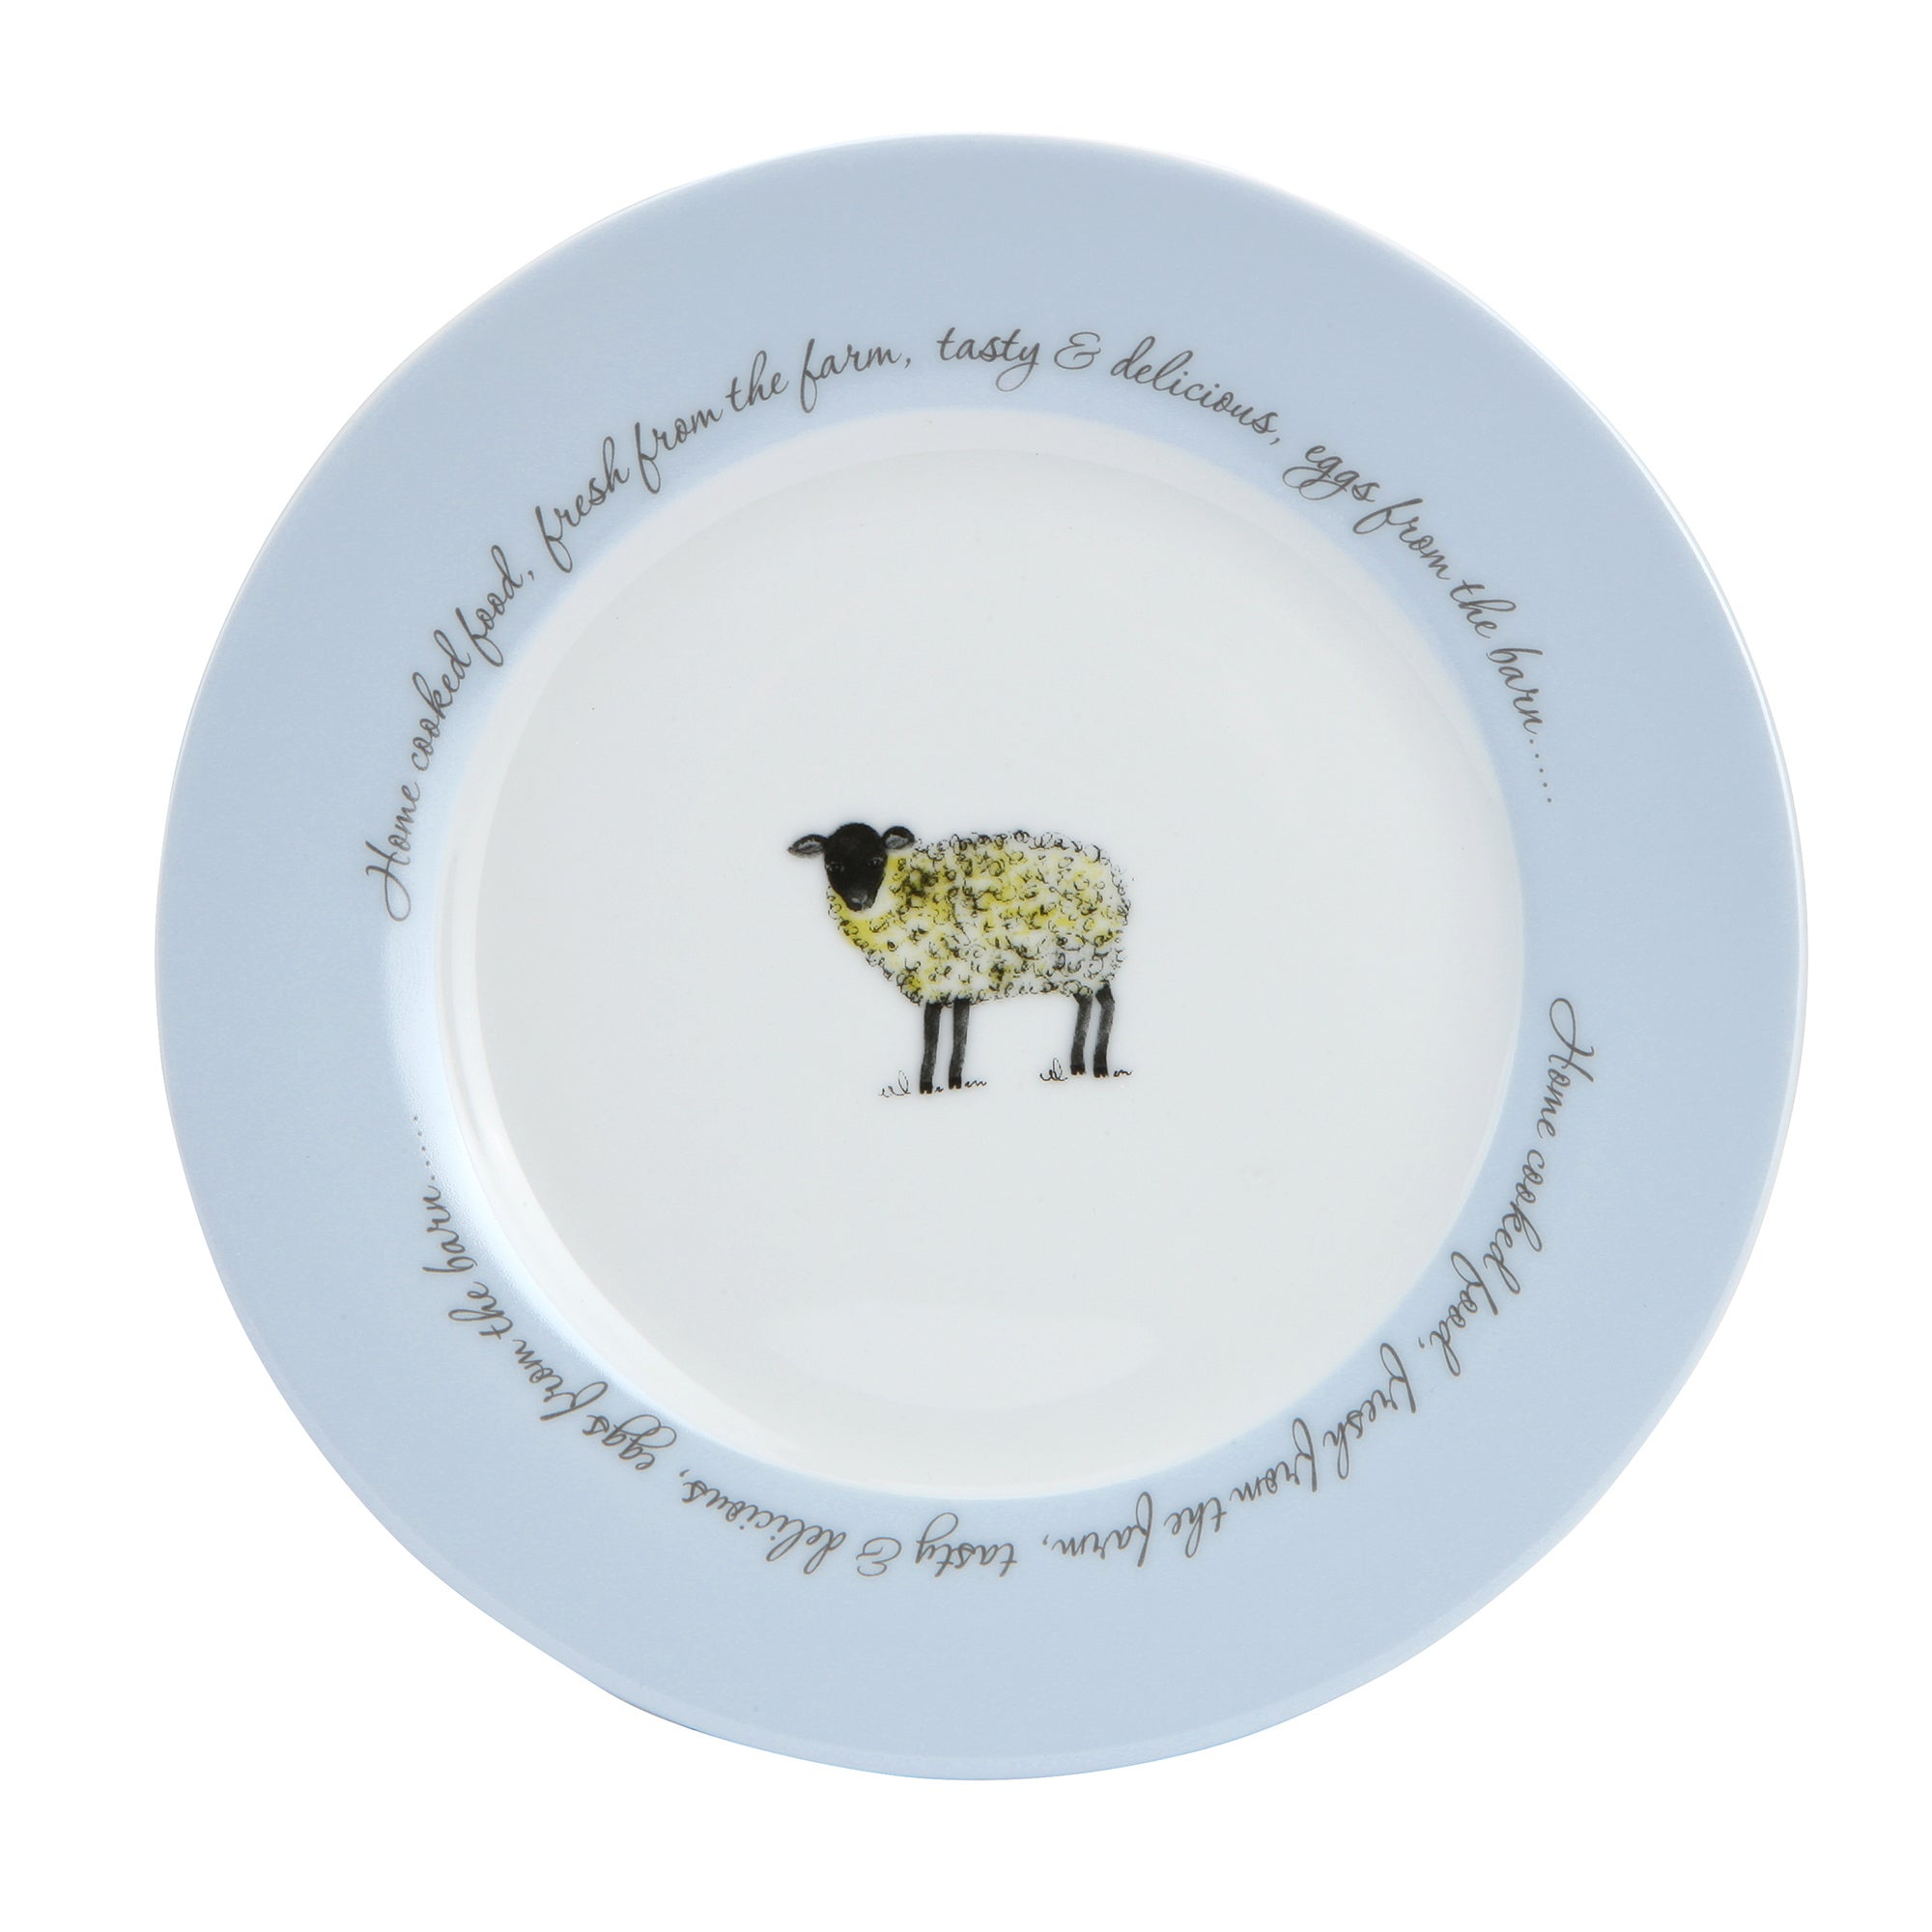 Bakewell Farm Collection Side Plate